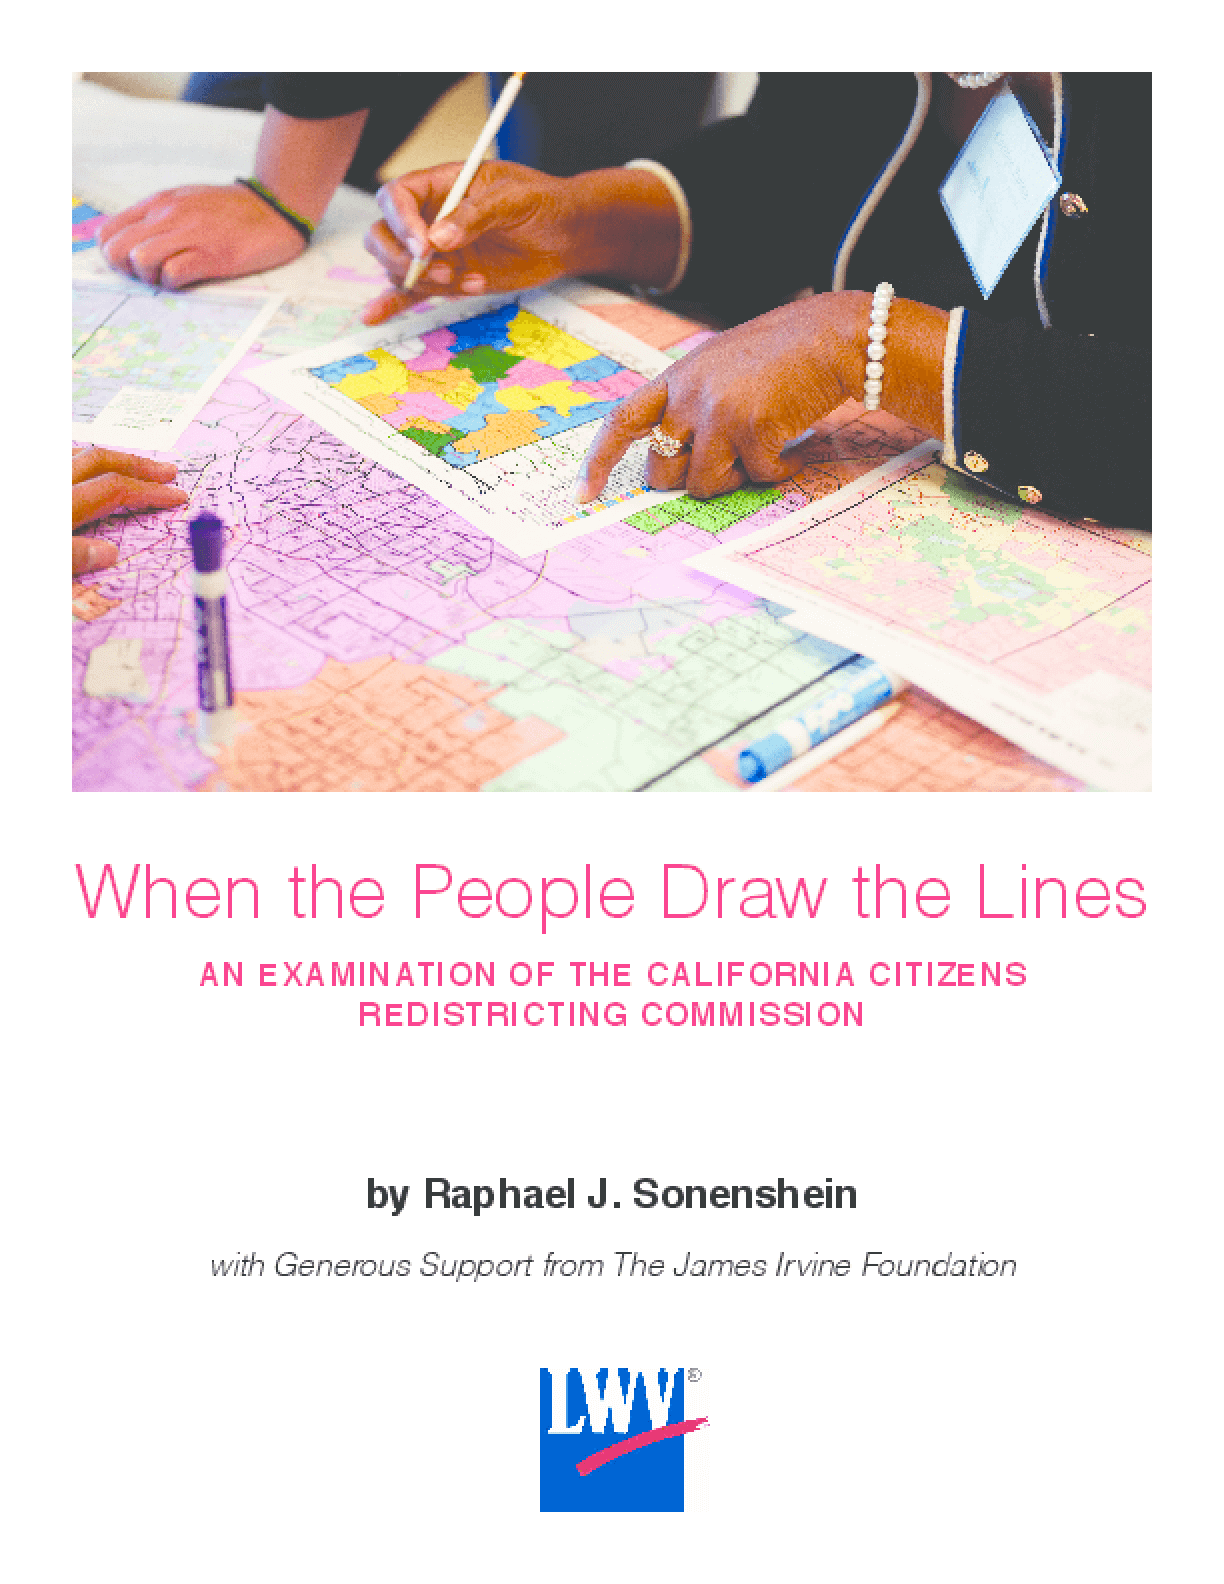 When the People Draw the Lines: An Examination of the California Citizens Redistricting Commission